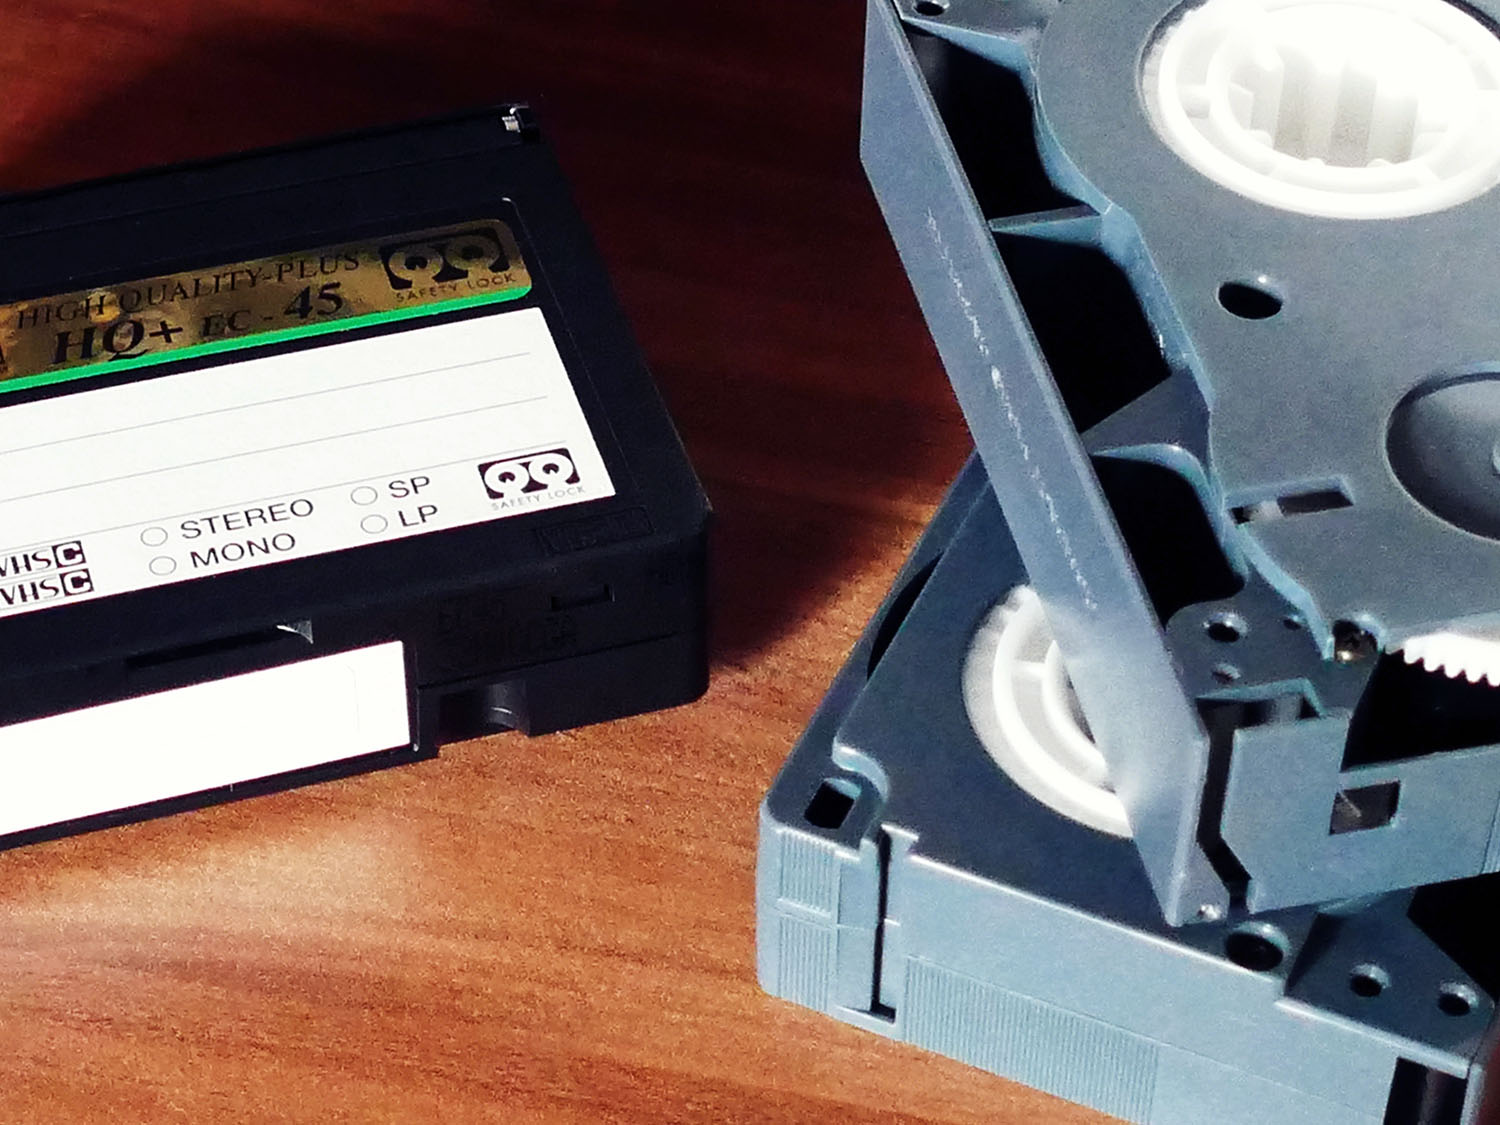 VHS DIGITIZATION - CONVERT YOU OLD VHS TAPES INTO DIGITAL MEDIA FORMATS. FILES ARE UPLOADED TO THE CLOUD FOR DOWNLOAD AND VIEWING ON ALL OF YOUR DEVICES.